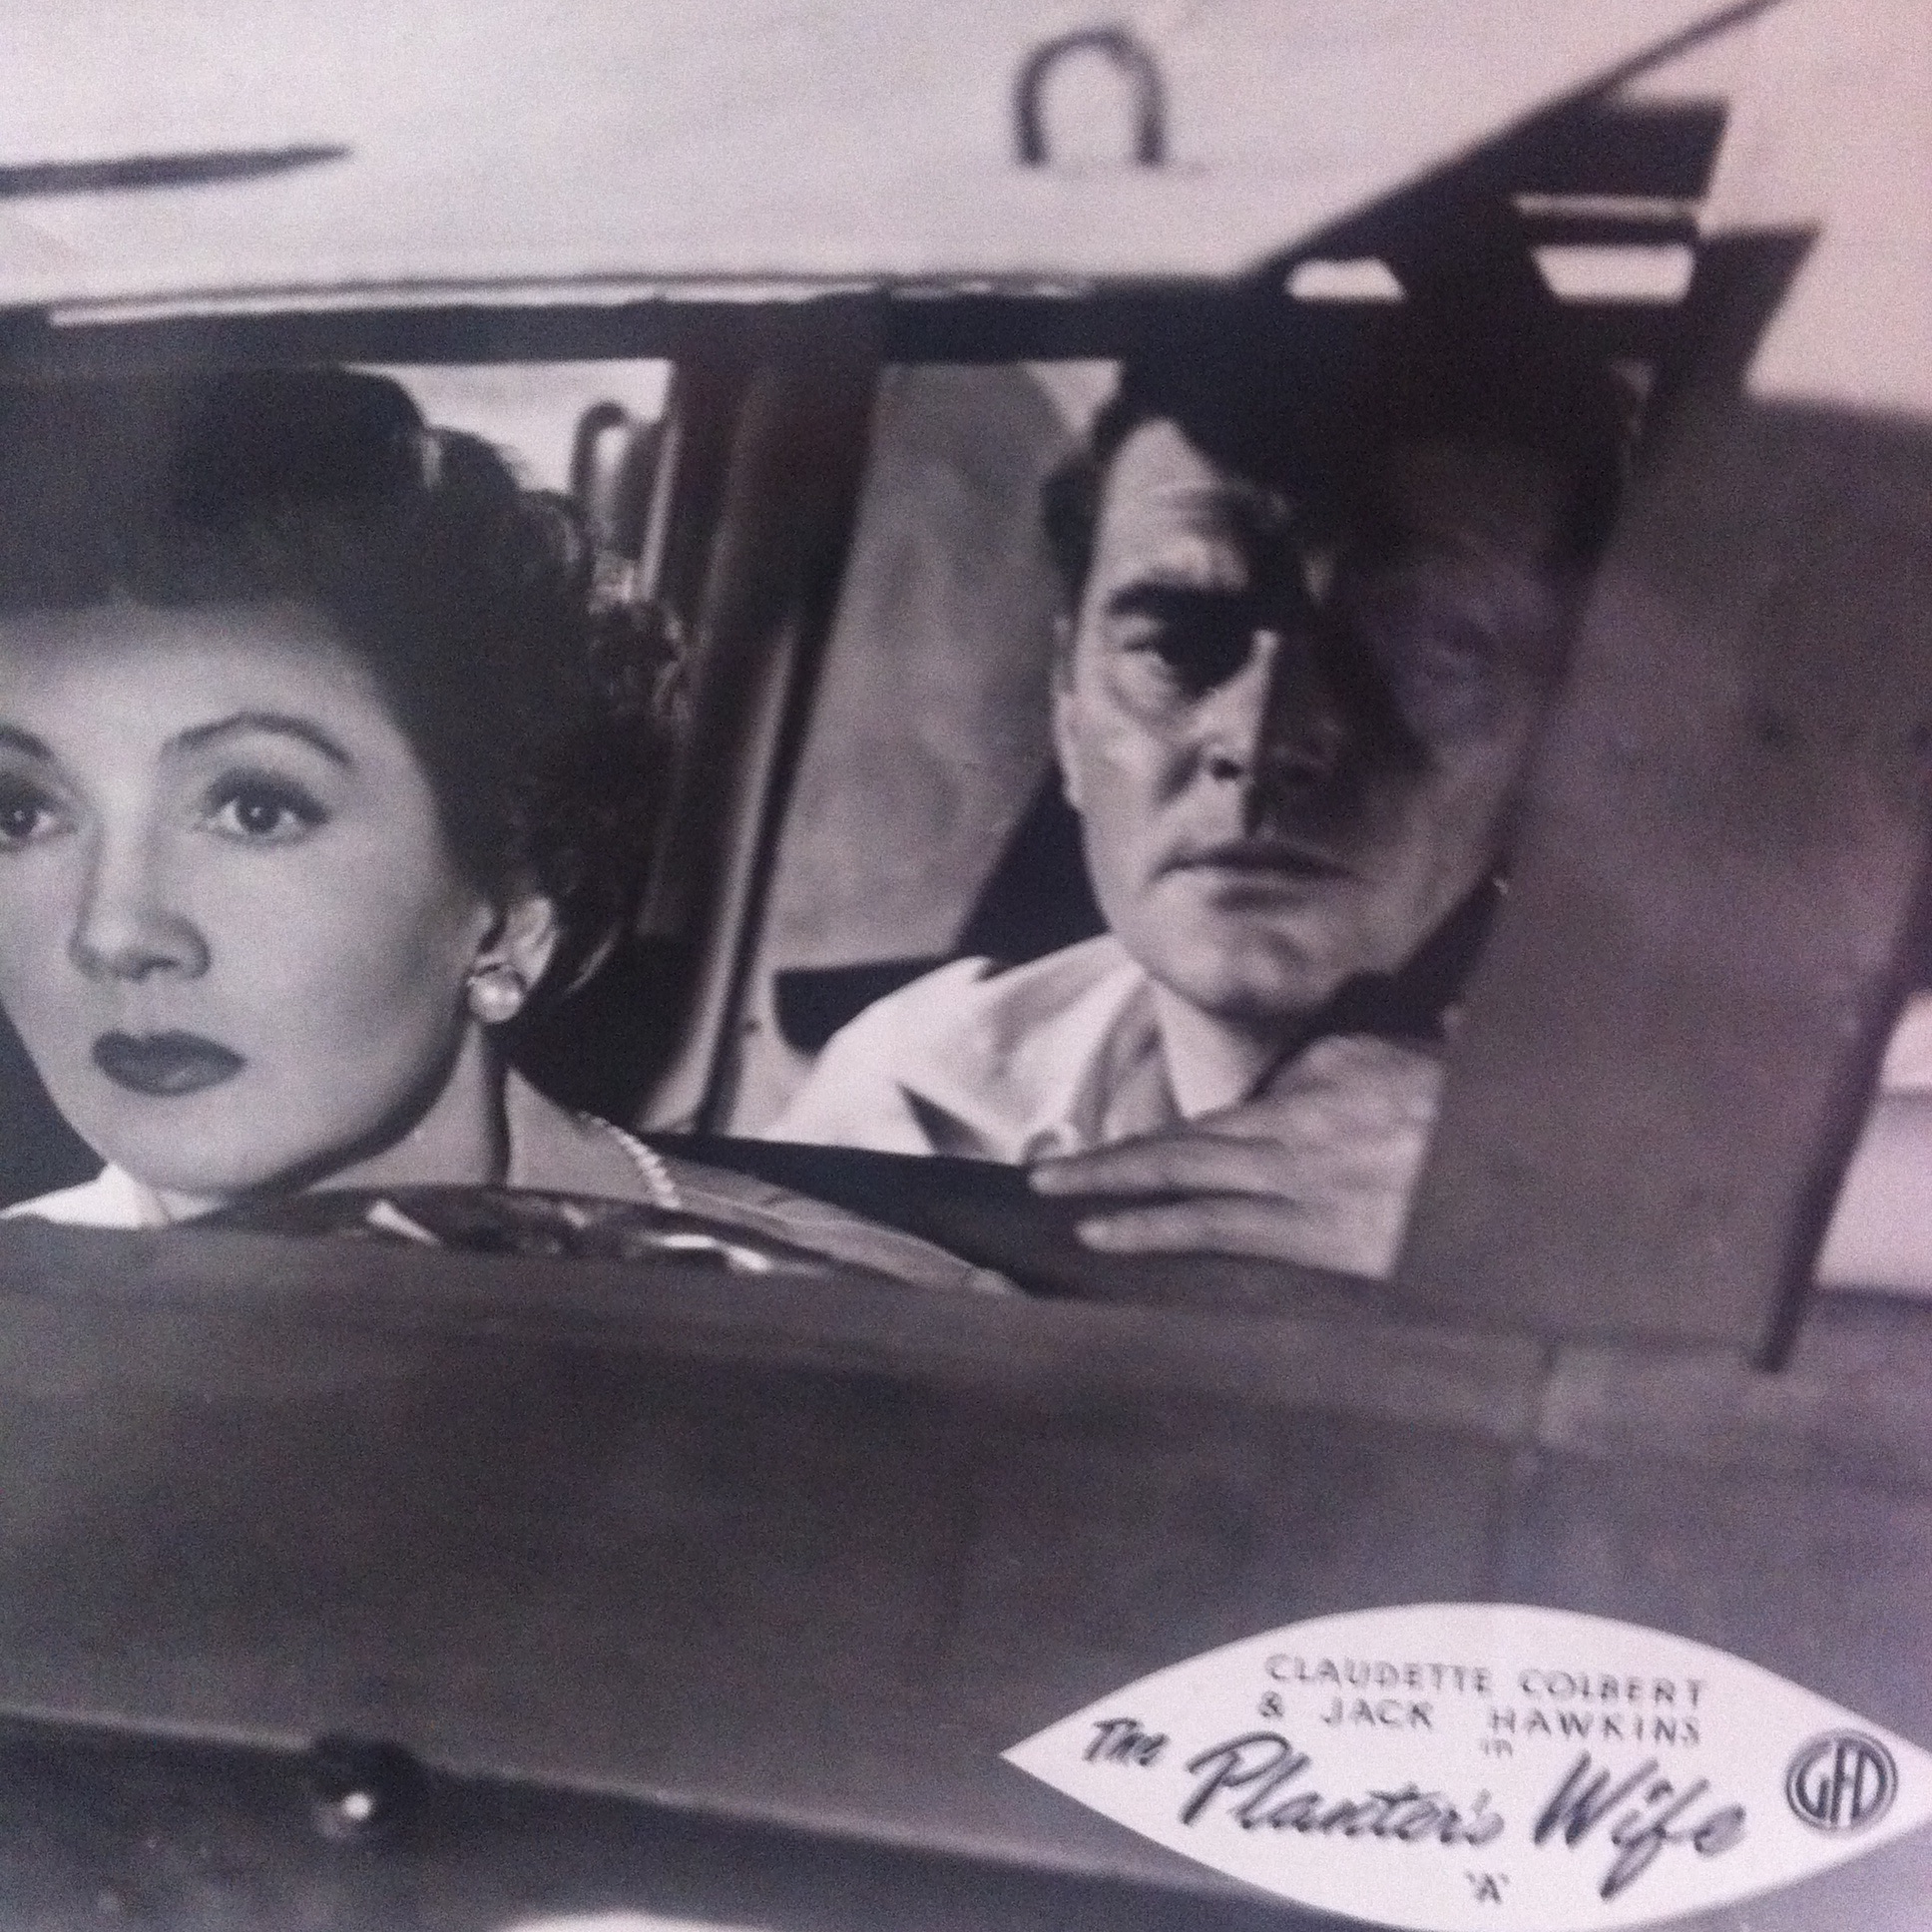 Claudette Colbert and Jack Hawkins in The Planter's Wife (1952)